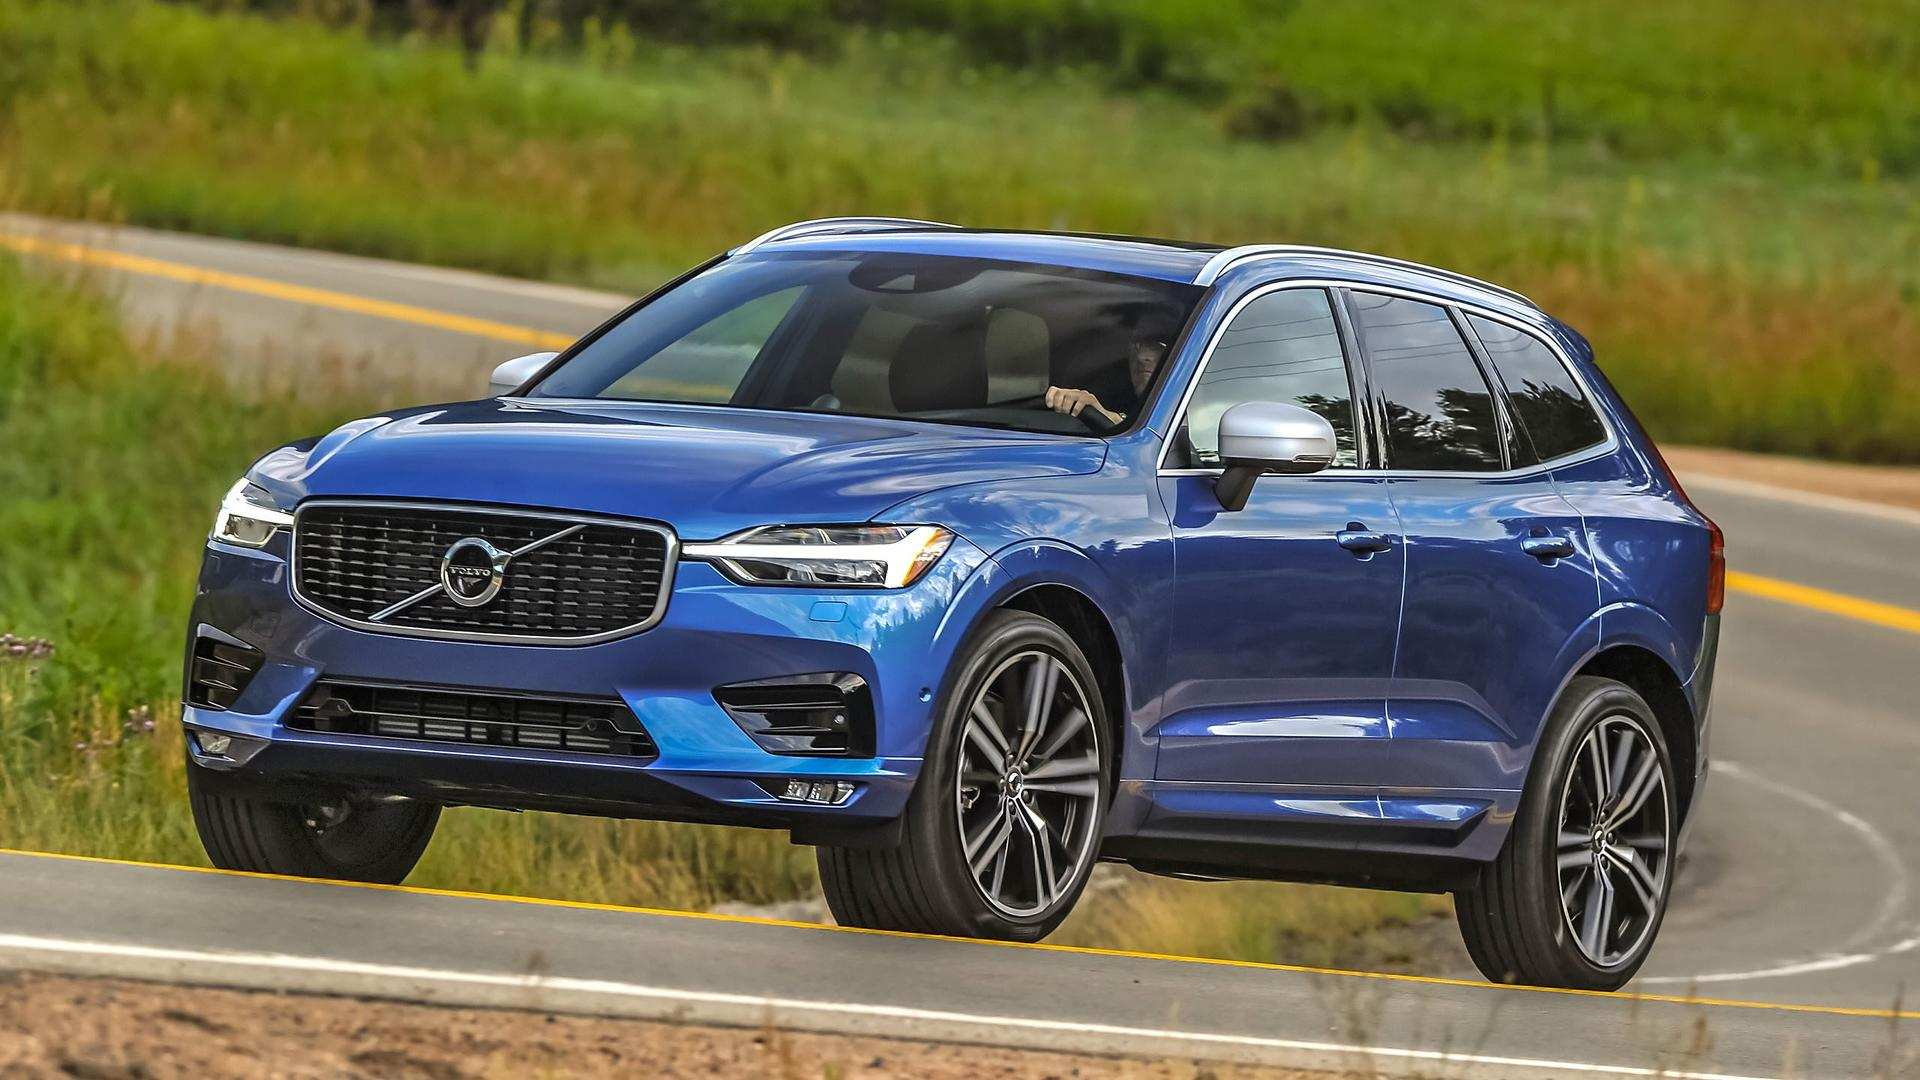 92 Concept of New Volvo Xc60 2019 Manual Specs Redesign and Concept by New Volvo Xc60 2019 Manual Specs